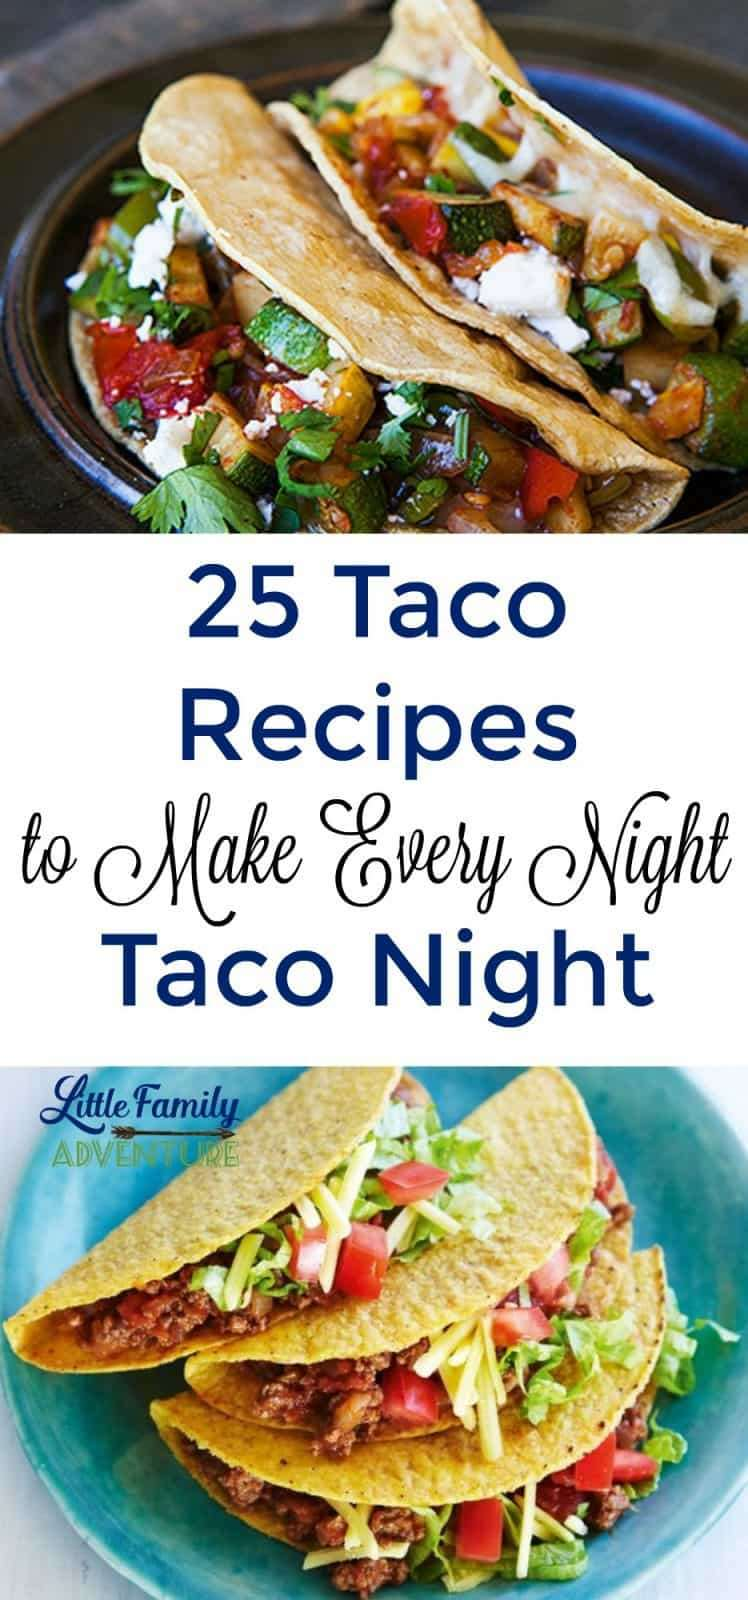 25 Taco Recipes to Make Every Night Taco Night